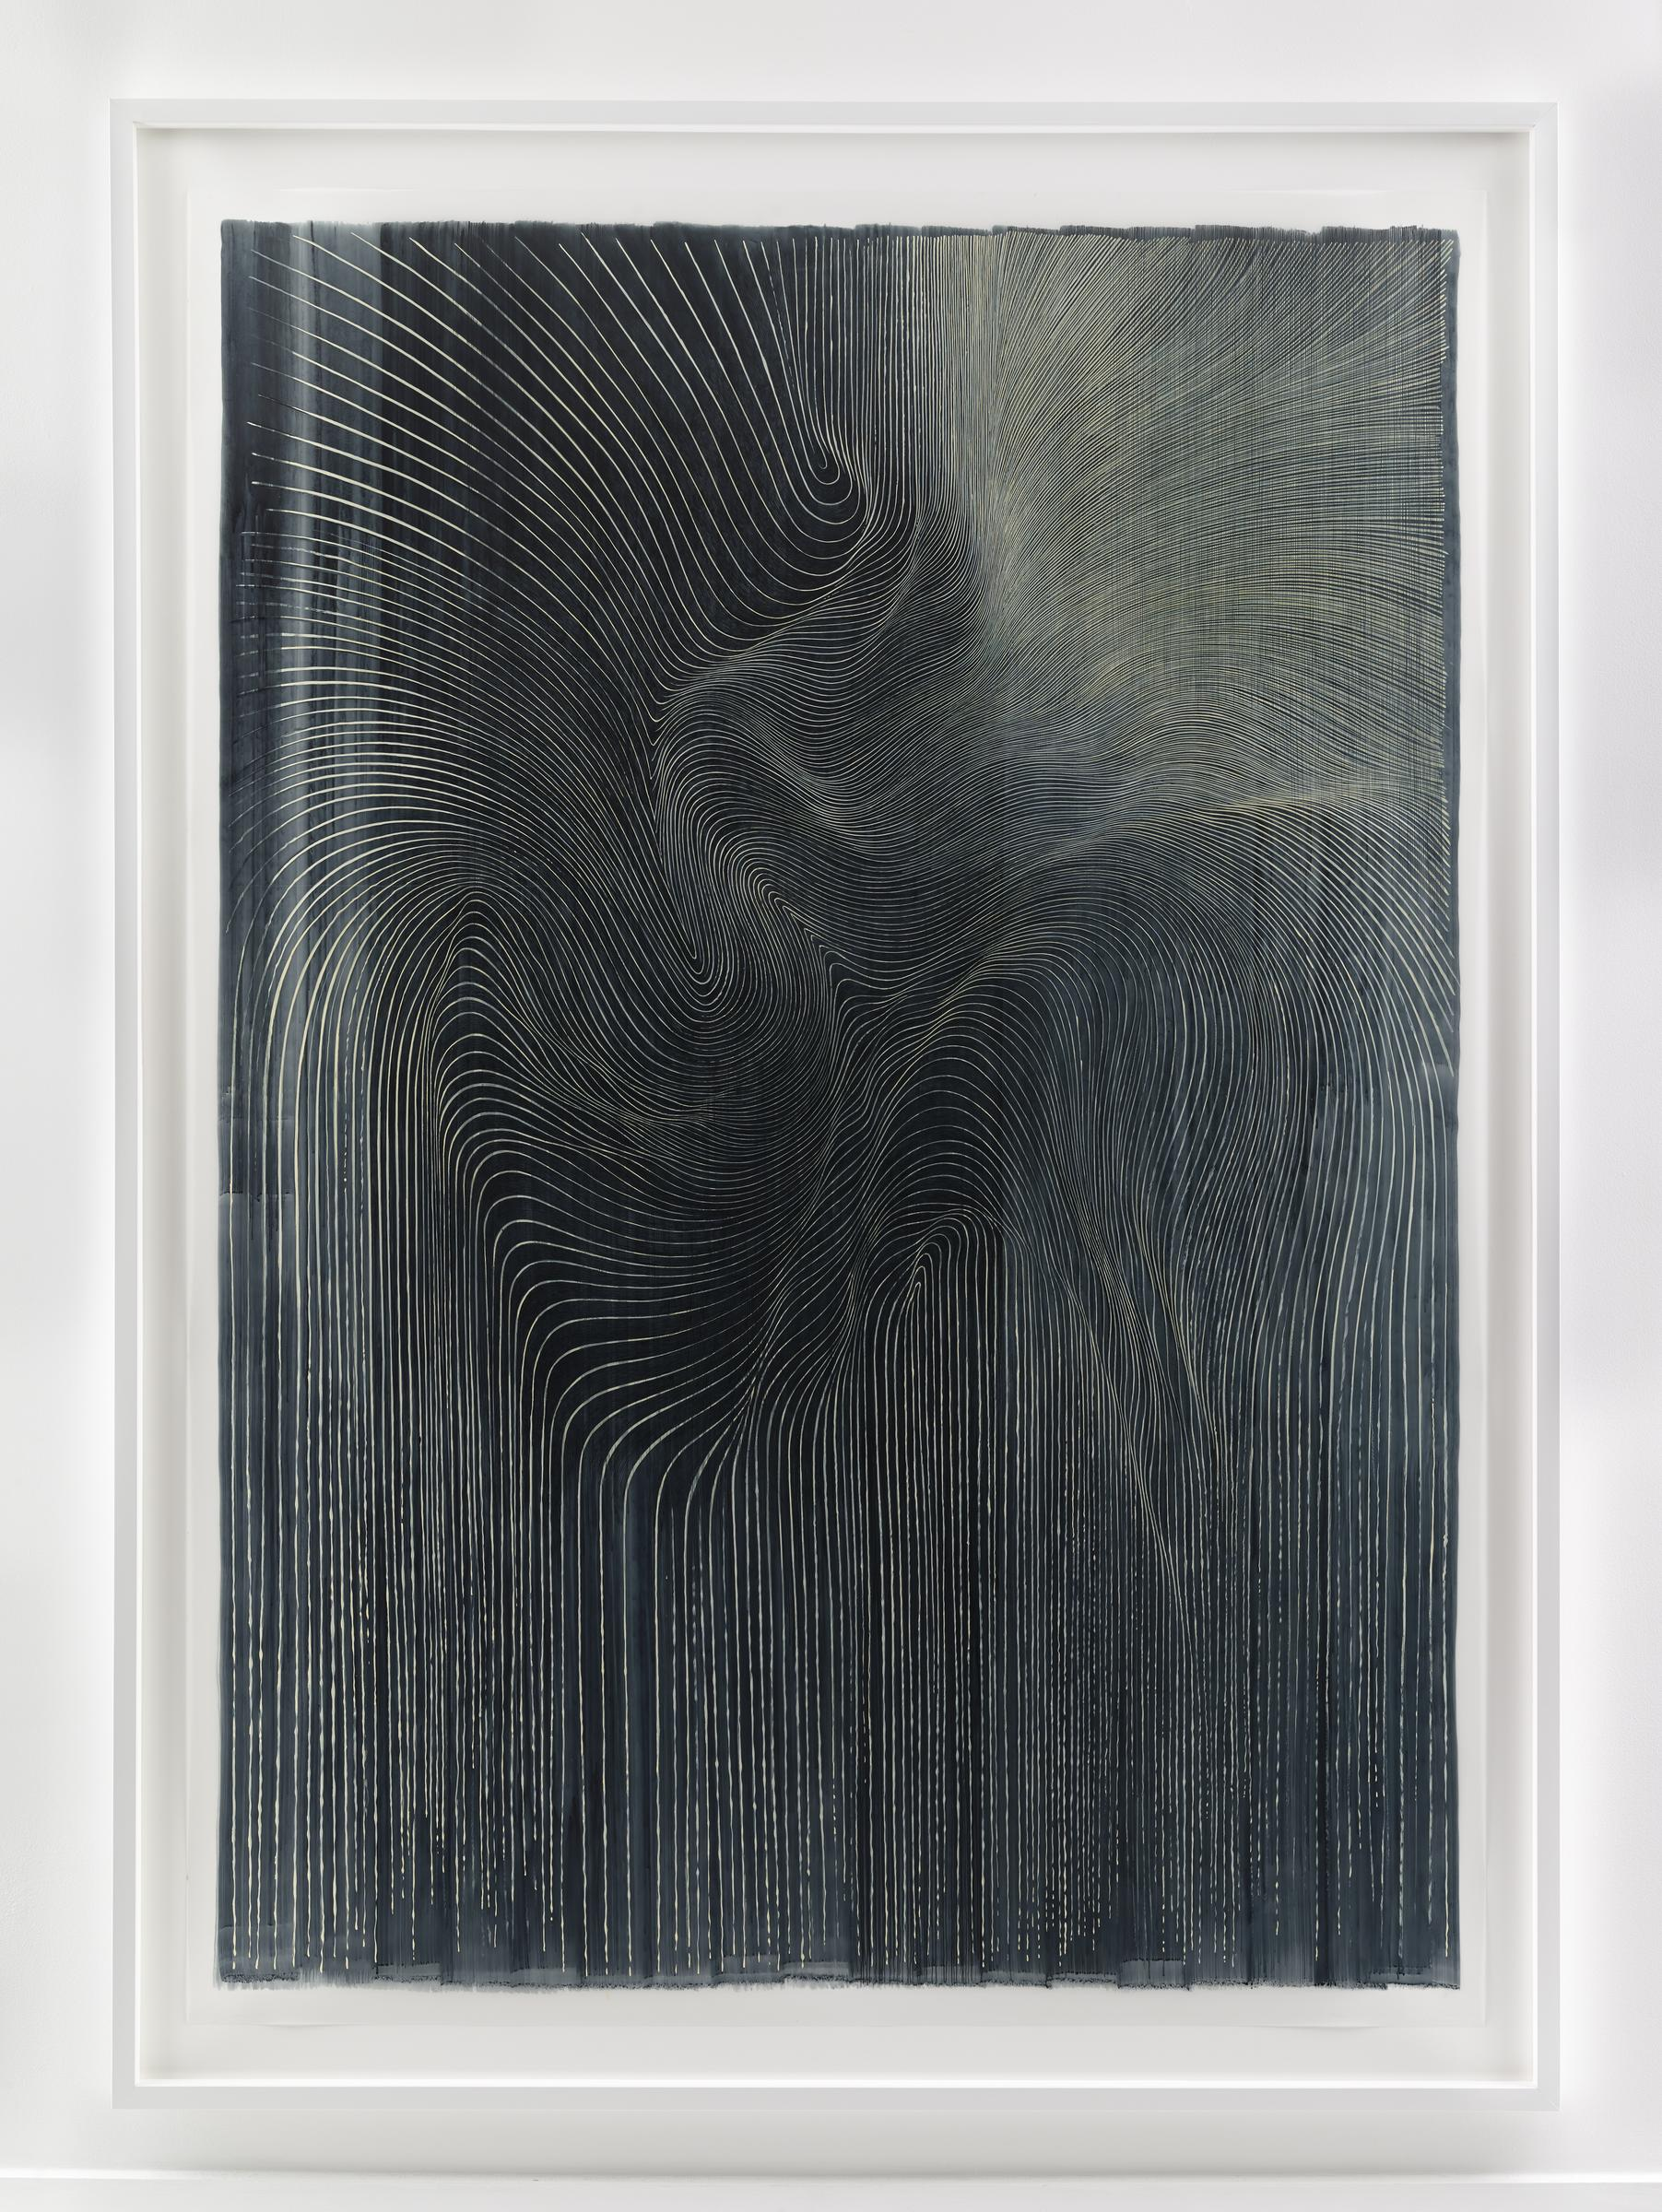 LINN MEYERS, Untitled, 2015, ink on mylar, 75 1/2 x 53 1/2 inches, SGI2990.